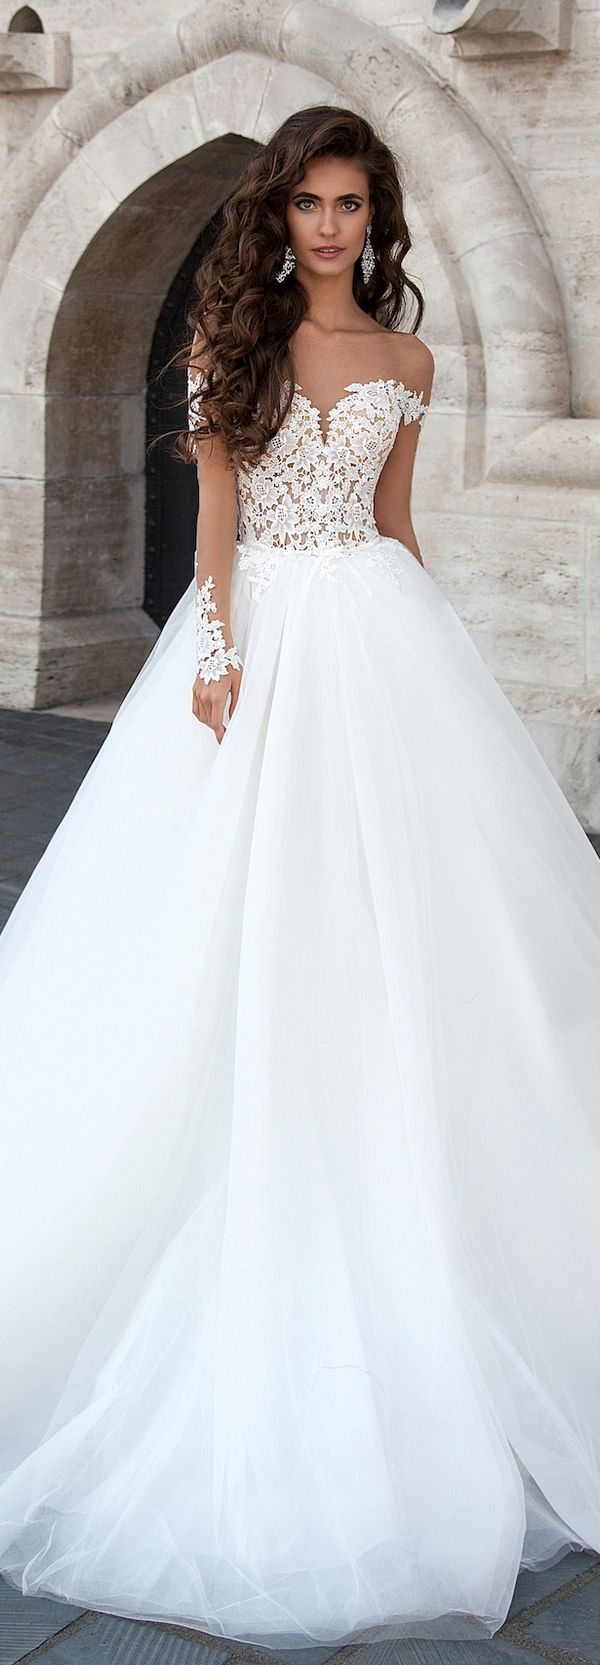 Milla Nova 2016 Bridal Wedding Dresses / http://www.deerpearlflowers.com/milla-nova-wedding-dresses/2/